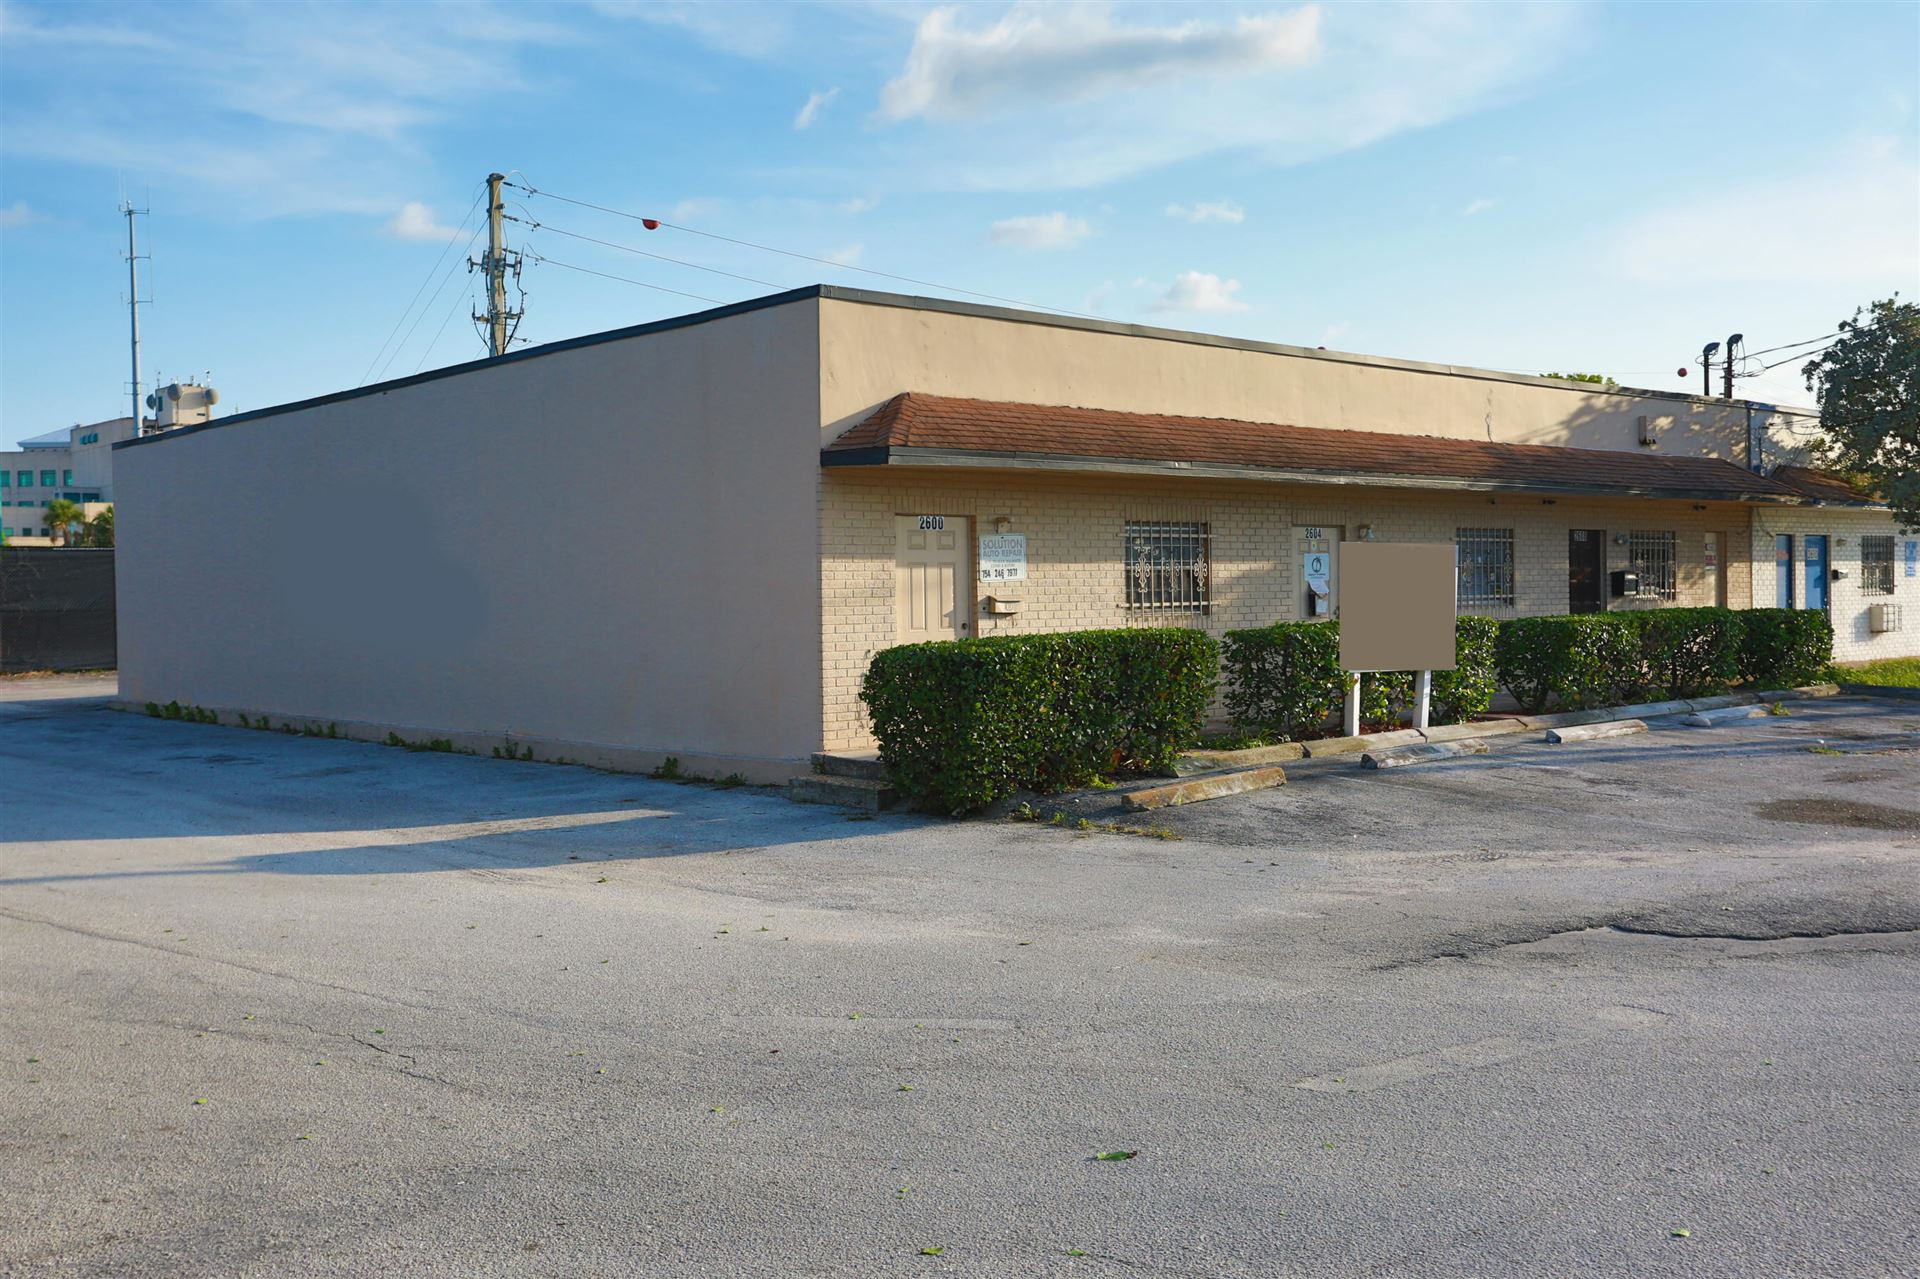 Photo of 2600 NW 4th Street, Fort Lauderdale, FL 33311 (MLS # RX-10704585)